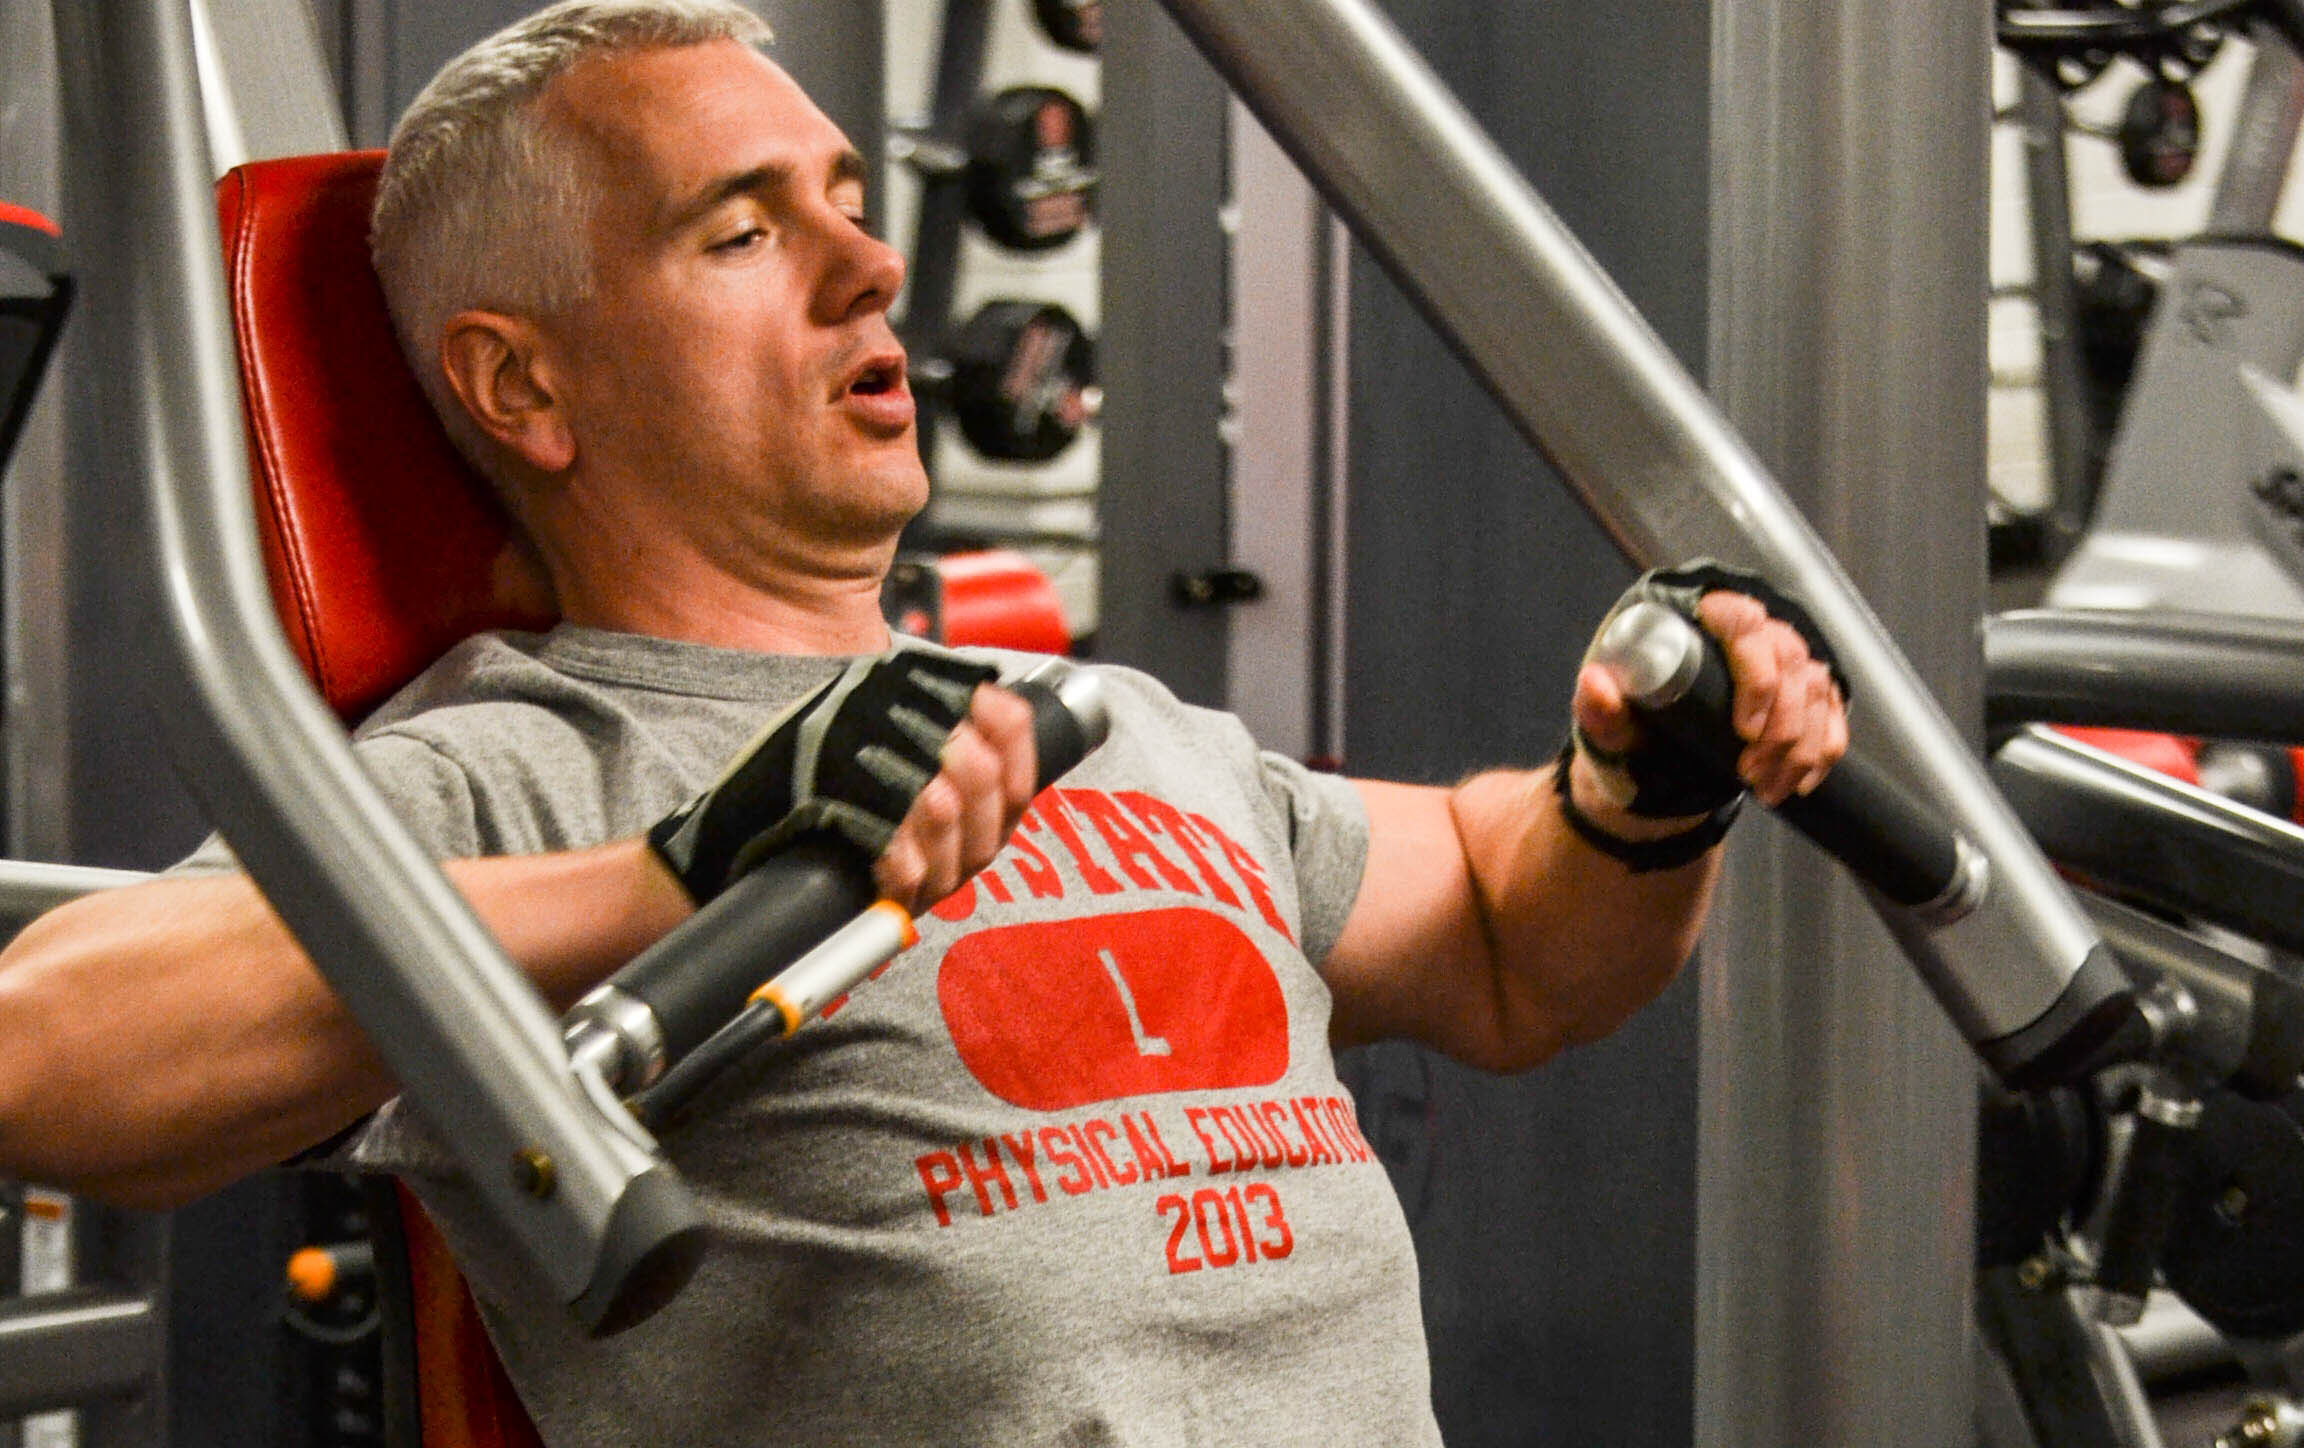 Staff and Faculty member working out at Carmichael Complex